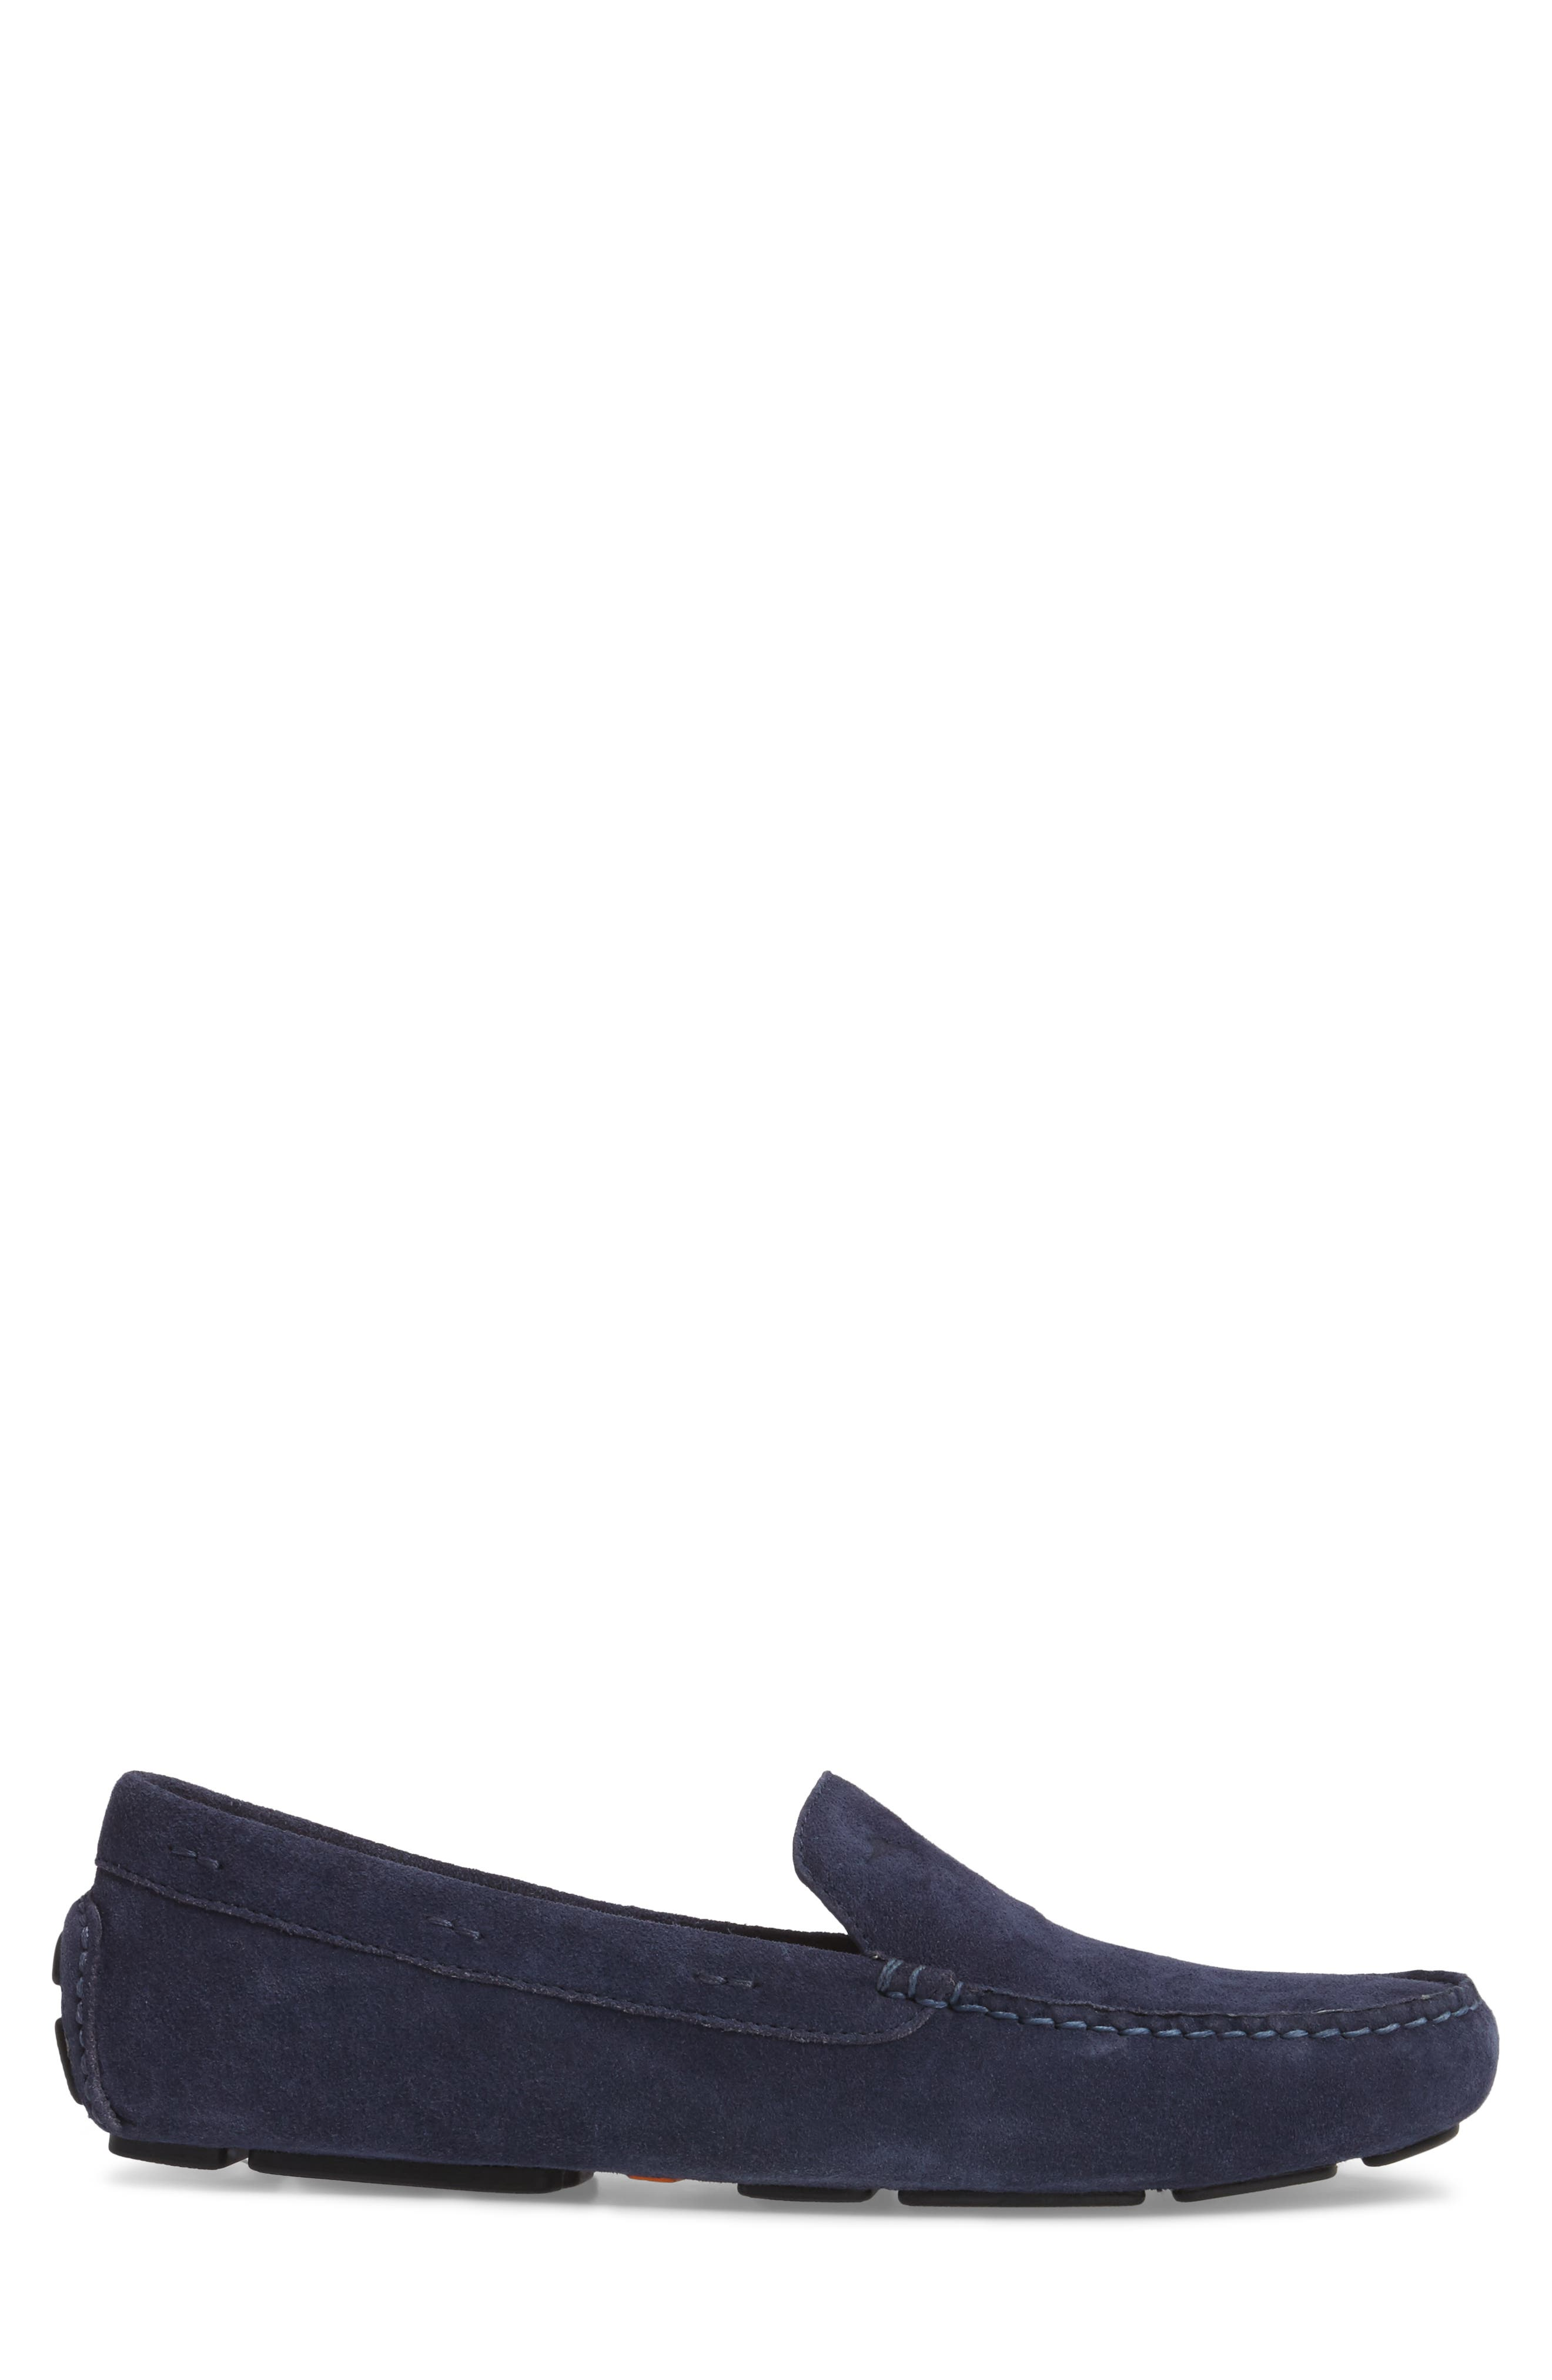 Pagota Driving Loafer,                             Alternate thumbnail 15, color,